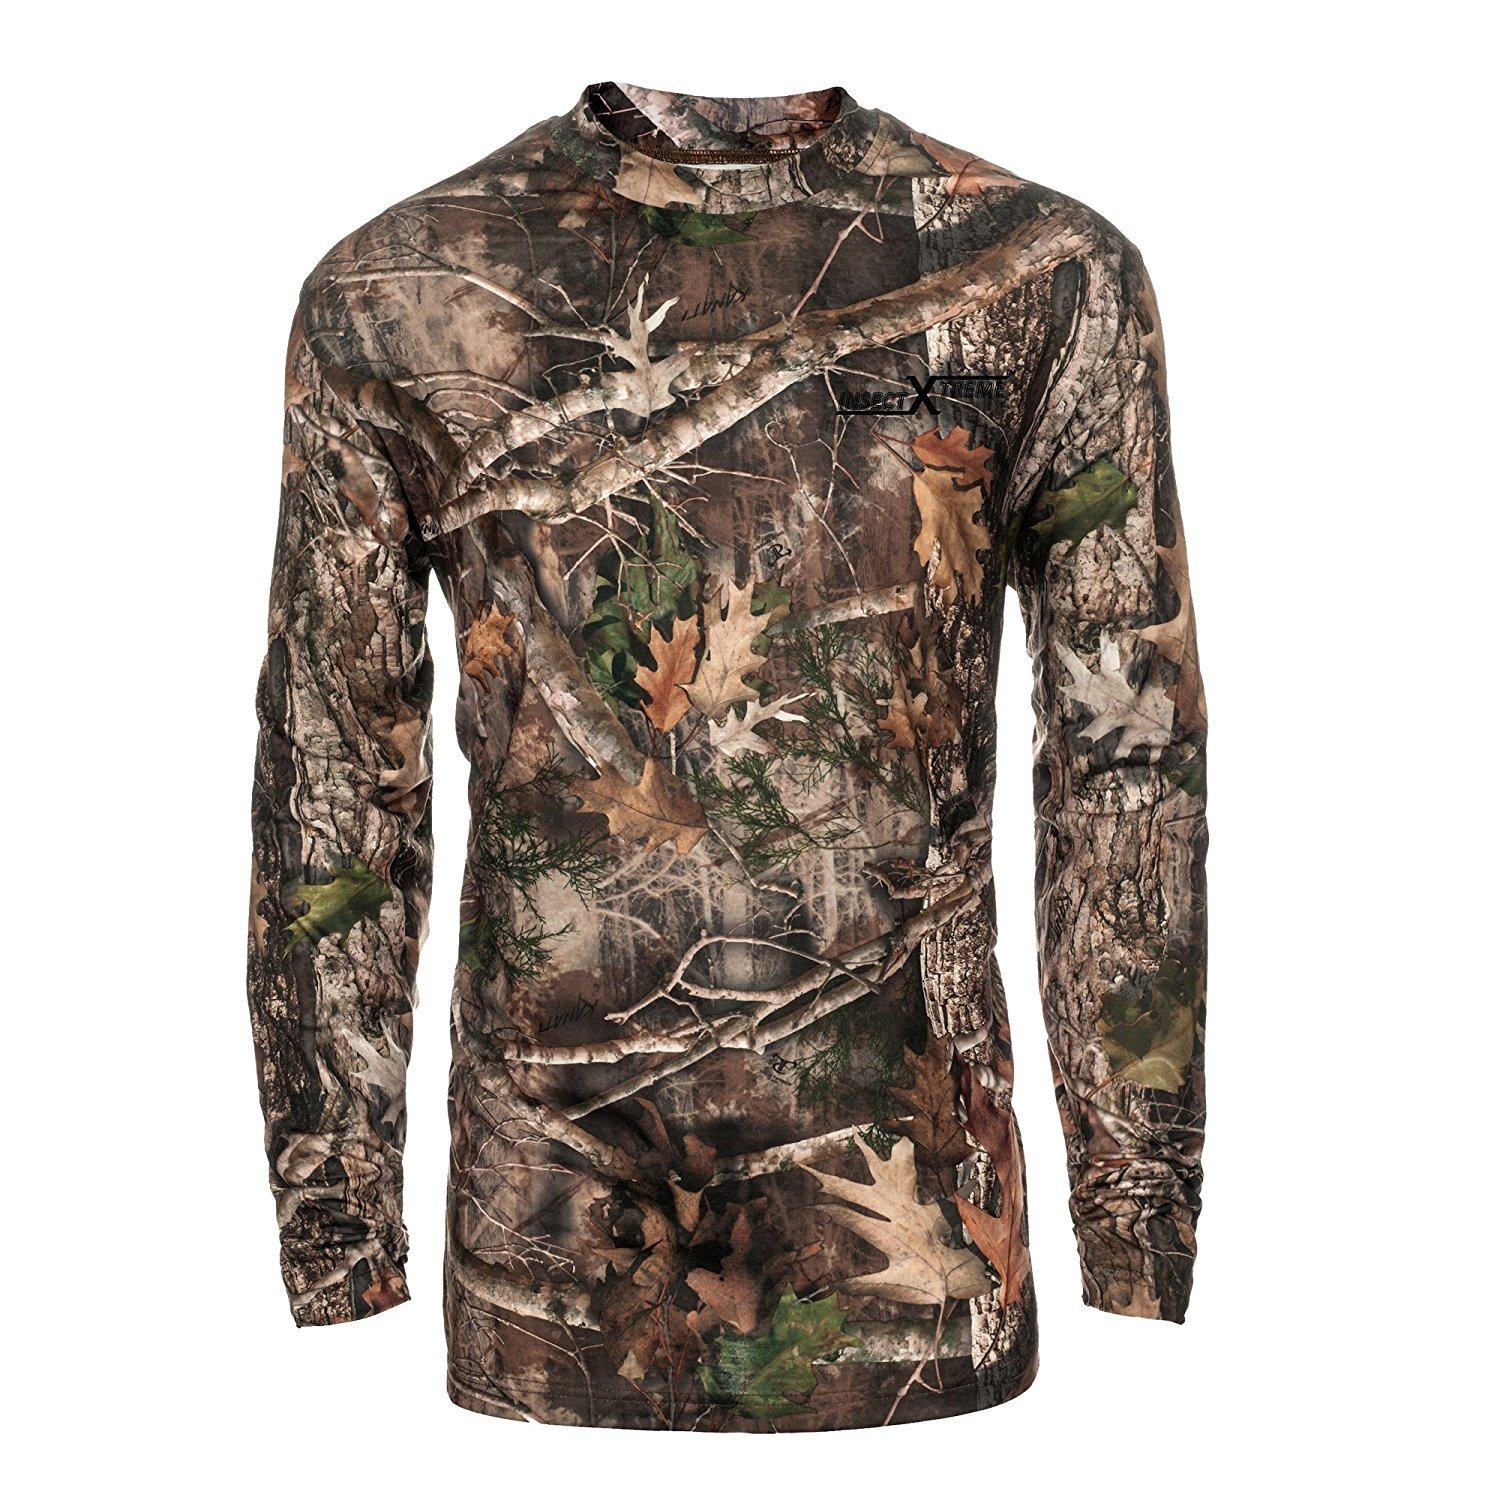 3. Insect Xtreme Repelling Shirt